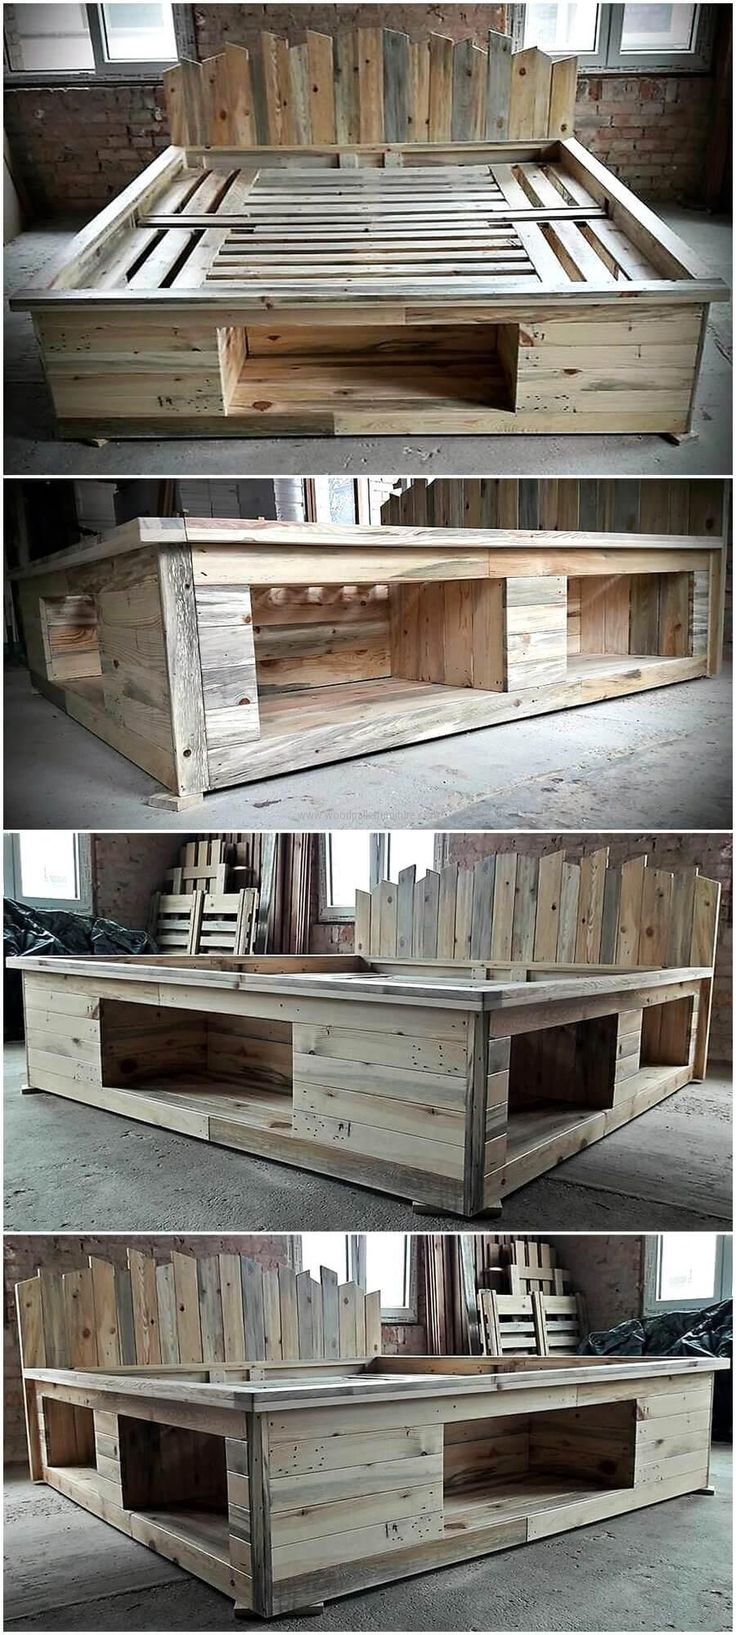 Wooden bed frame ideas - Repurposed Pallets Bed Frame With Storage Option